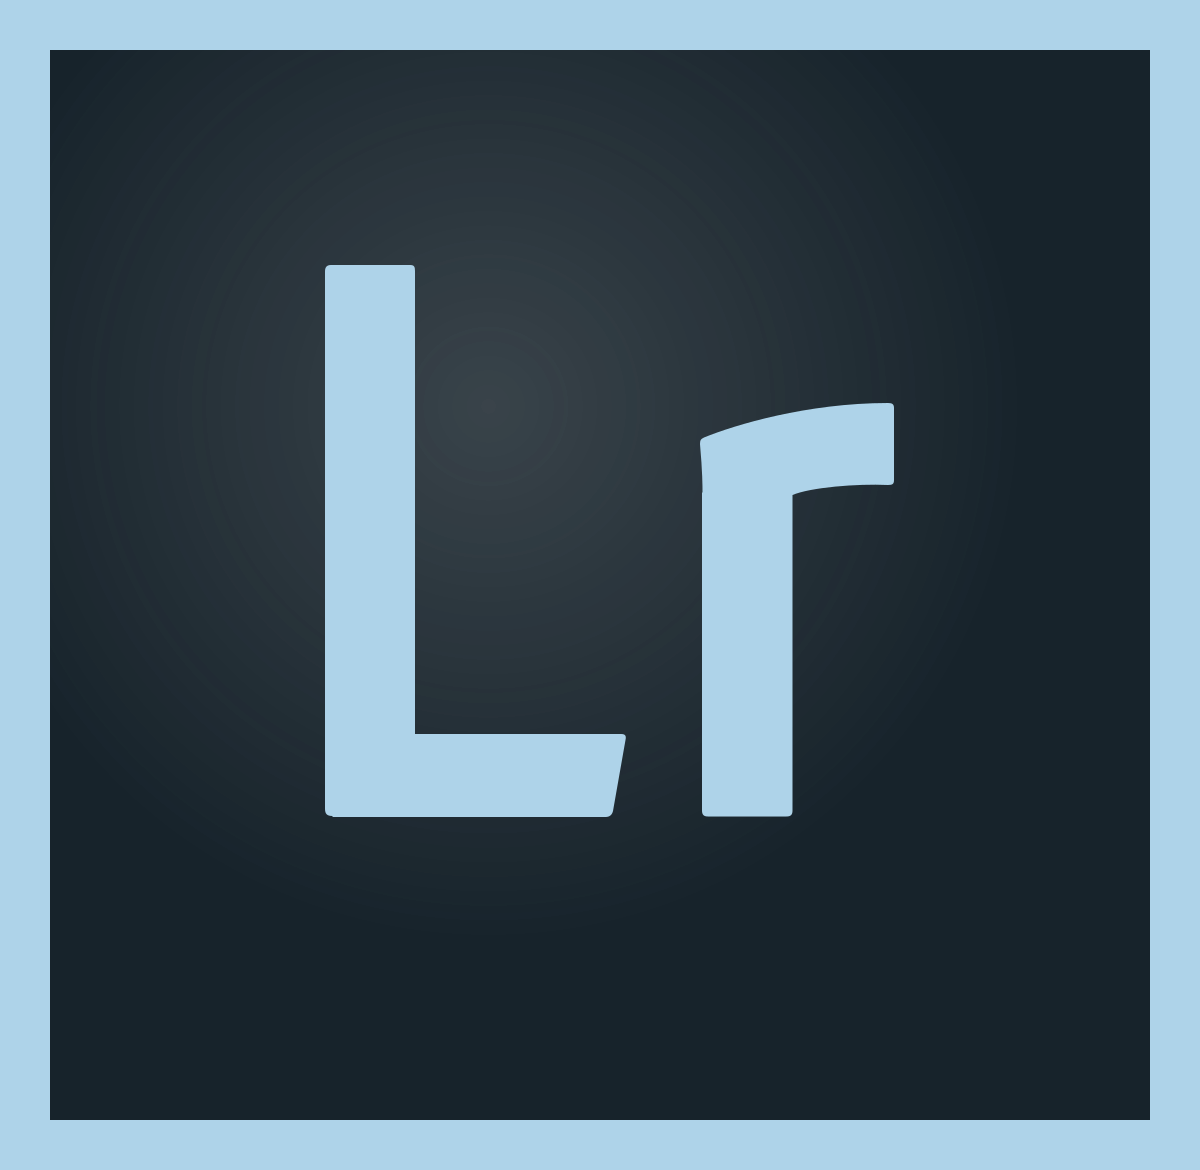 Logo Adobe Lightroom CS6